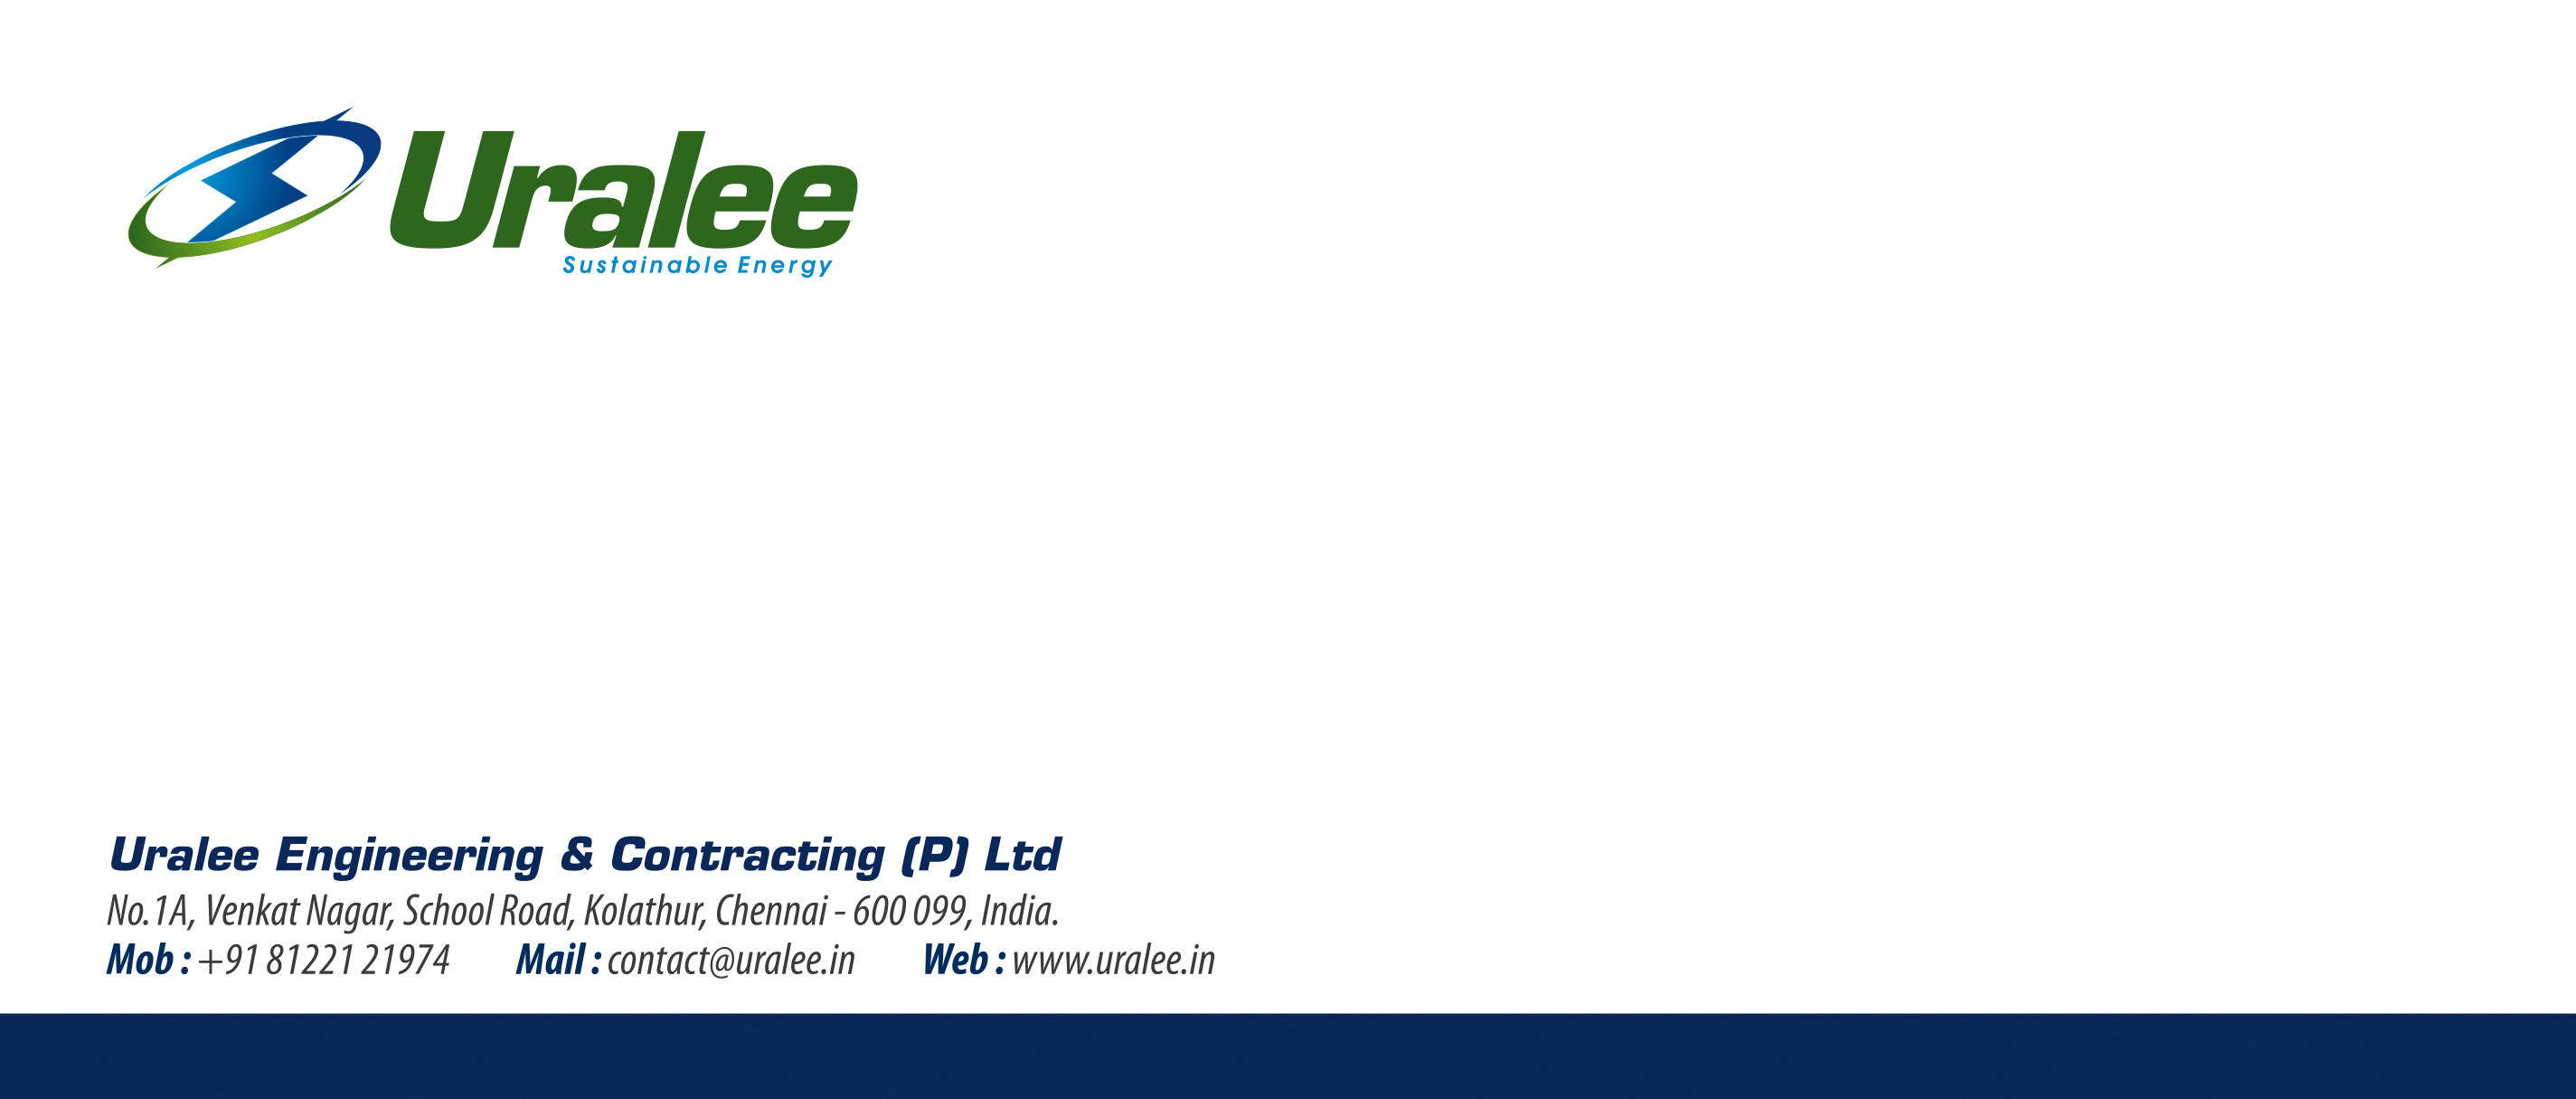 Letter Cover Designing Services - Uralee Engineering And Contracting (P) Ltd,Kolattur,Chennai.